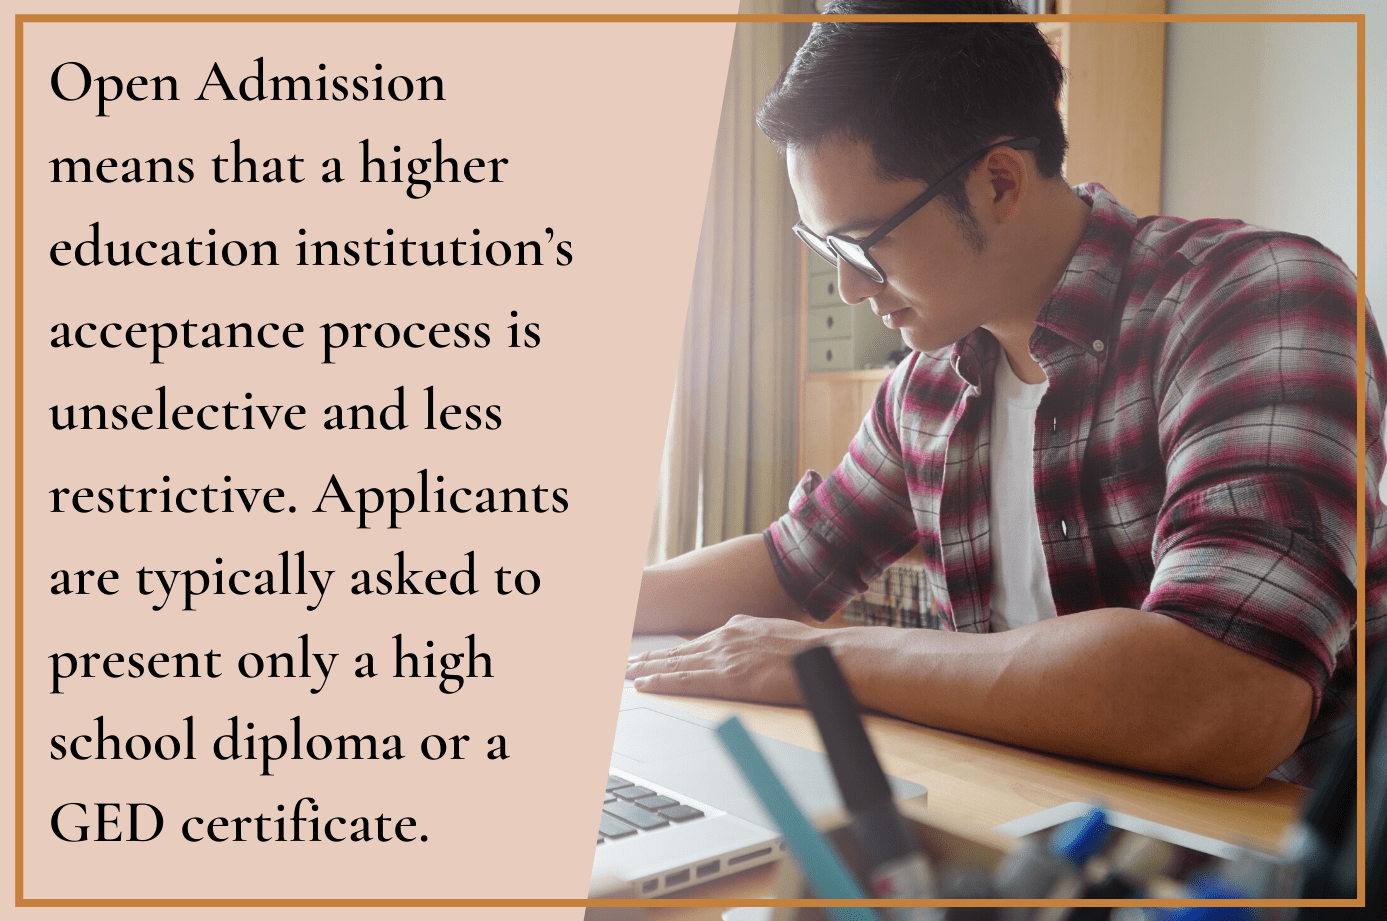 open admission fact 3